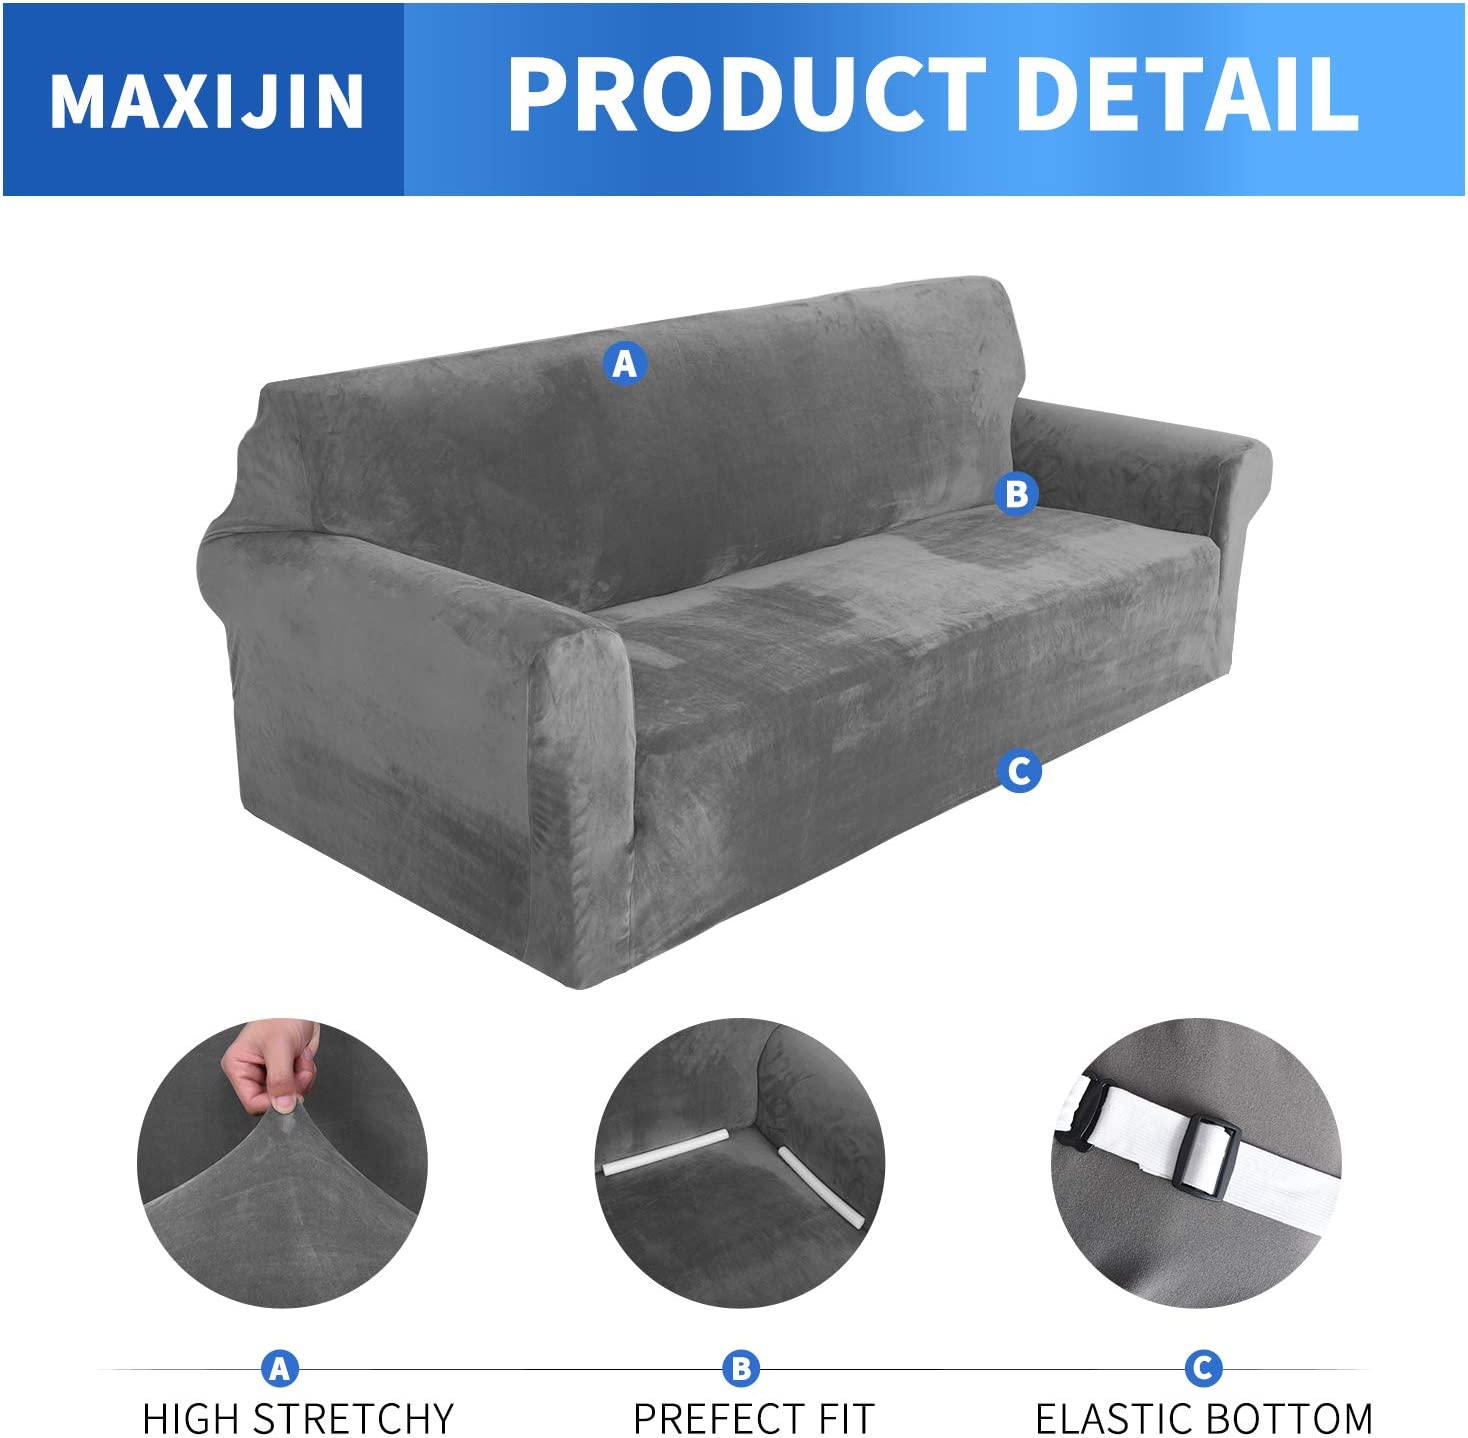 2 Seater, Grey MAXIJIN Thick Velvet Sofa Covers 2 Seater Super Stretchy Loveseat Covers for Living Room Dogs Cat Pet Plush Love Seat Couch Slipcovers Elastic Furniture Protector